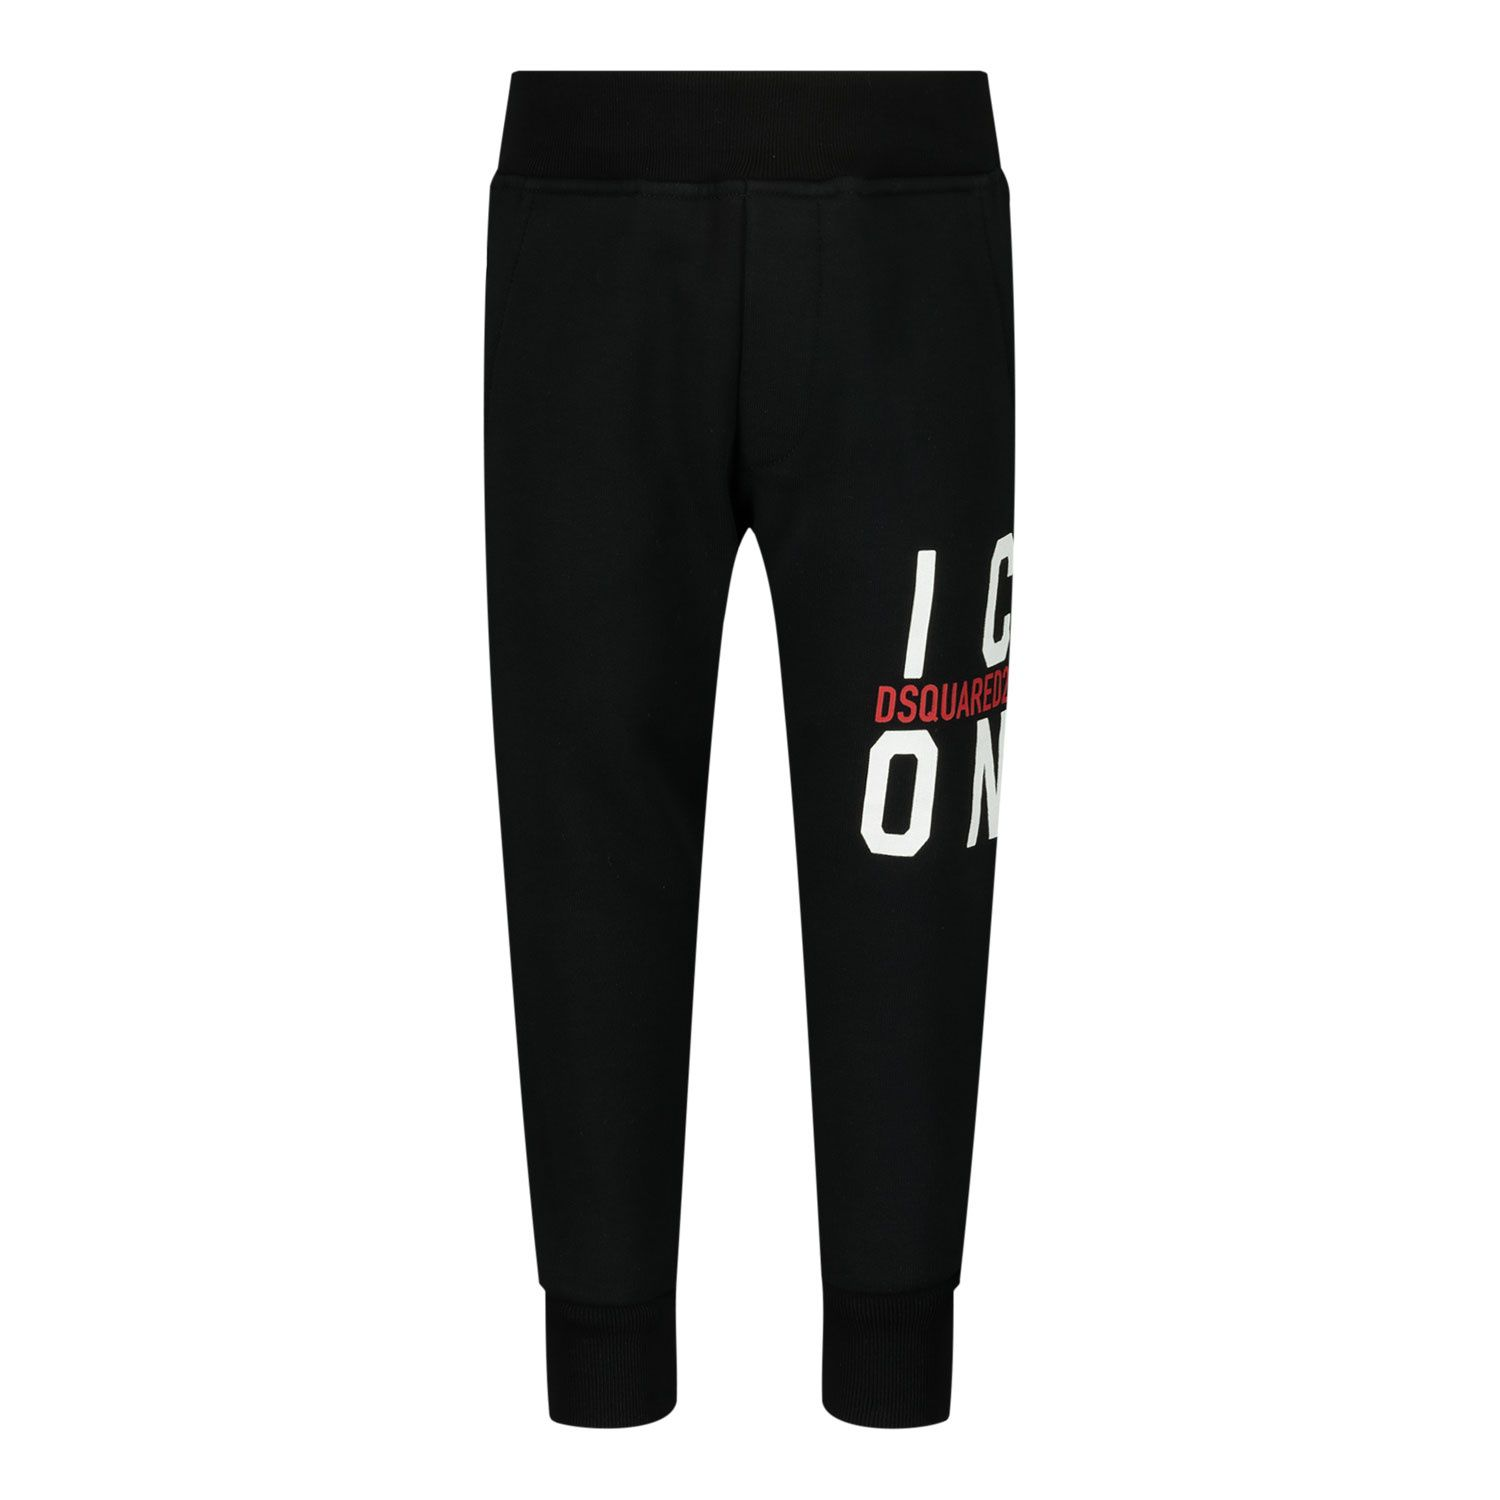 Picture of Dsquared2 DQ0249 baby pants black